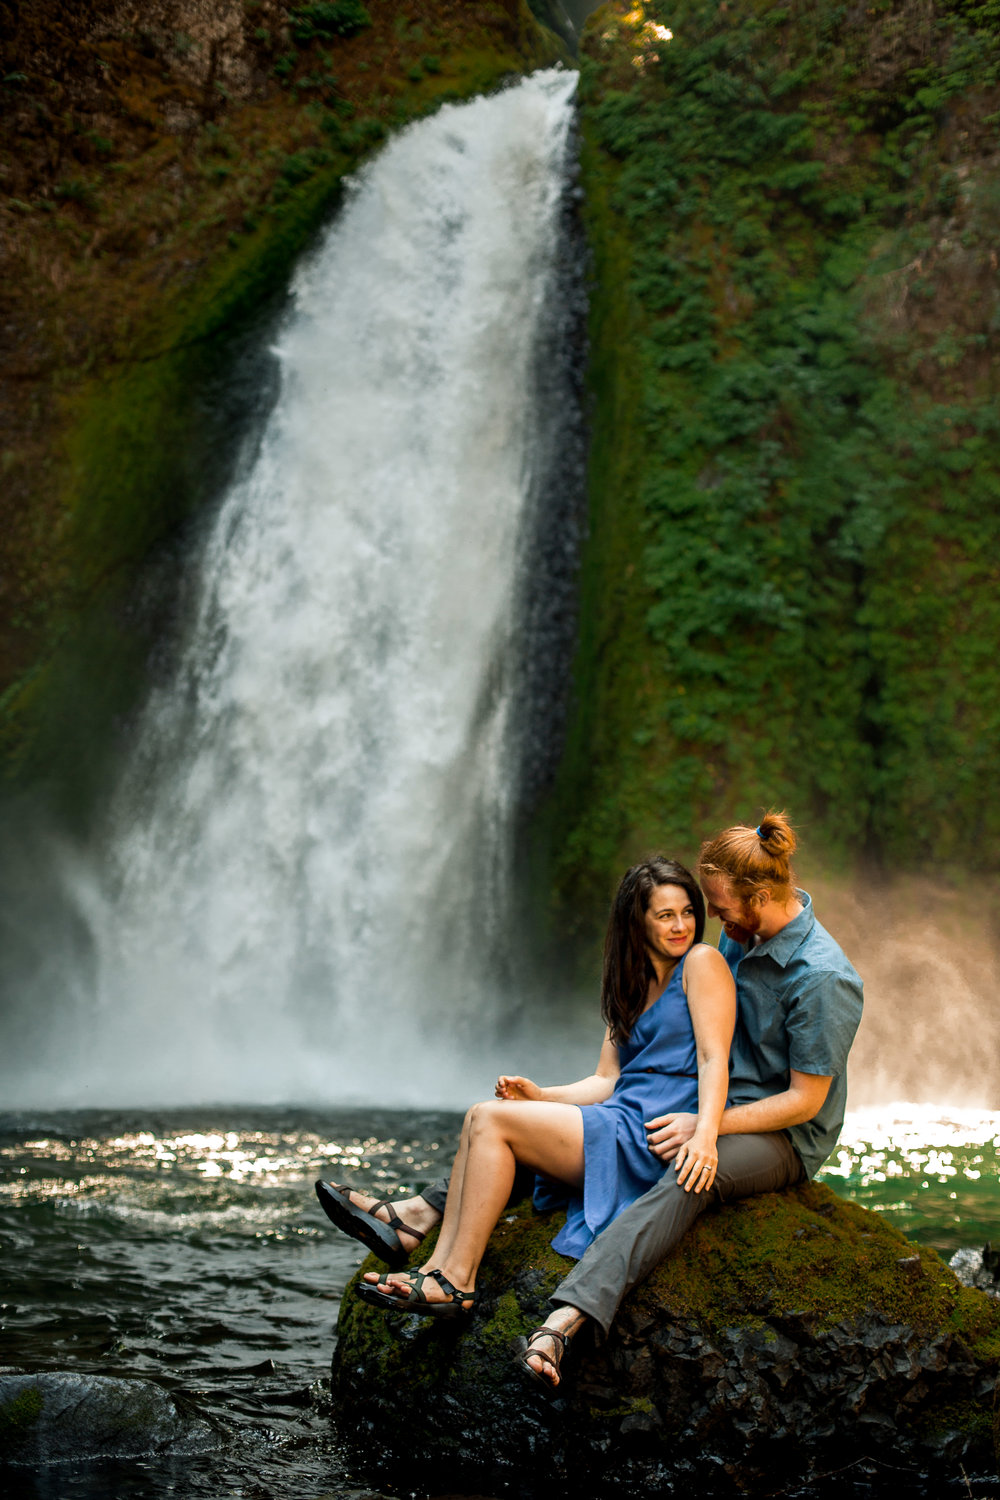 nicole-daacke-photography-wahclella-falls-waterfall-engagement-session-portland-engagement-photographer-columbia-river-gorge-oregon-elopement-photographer-25.jpg